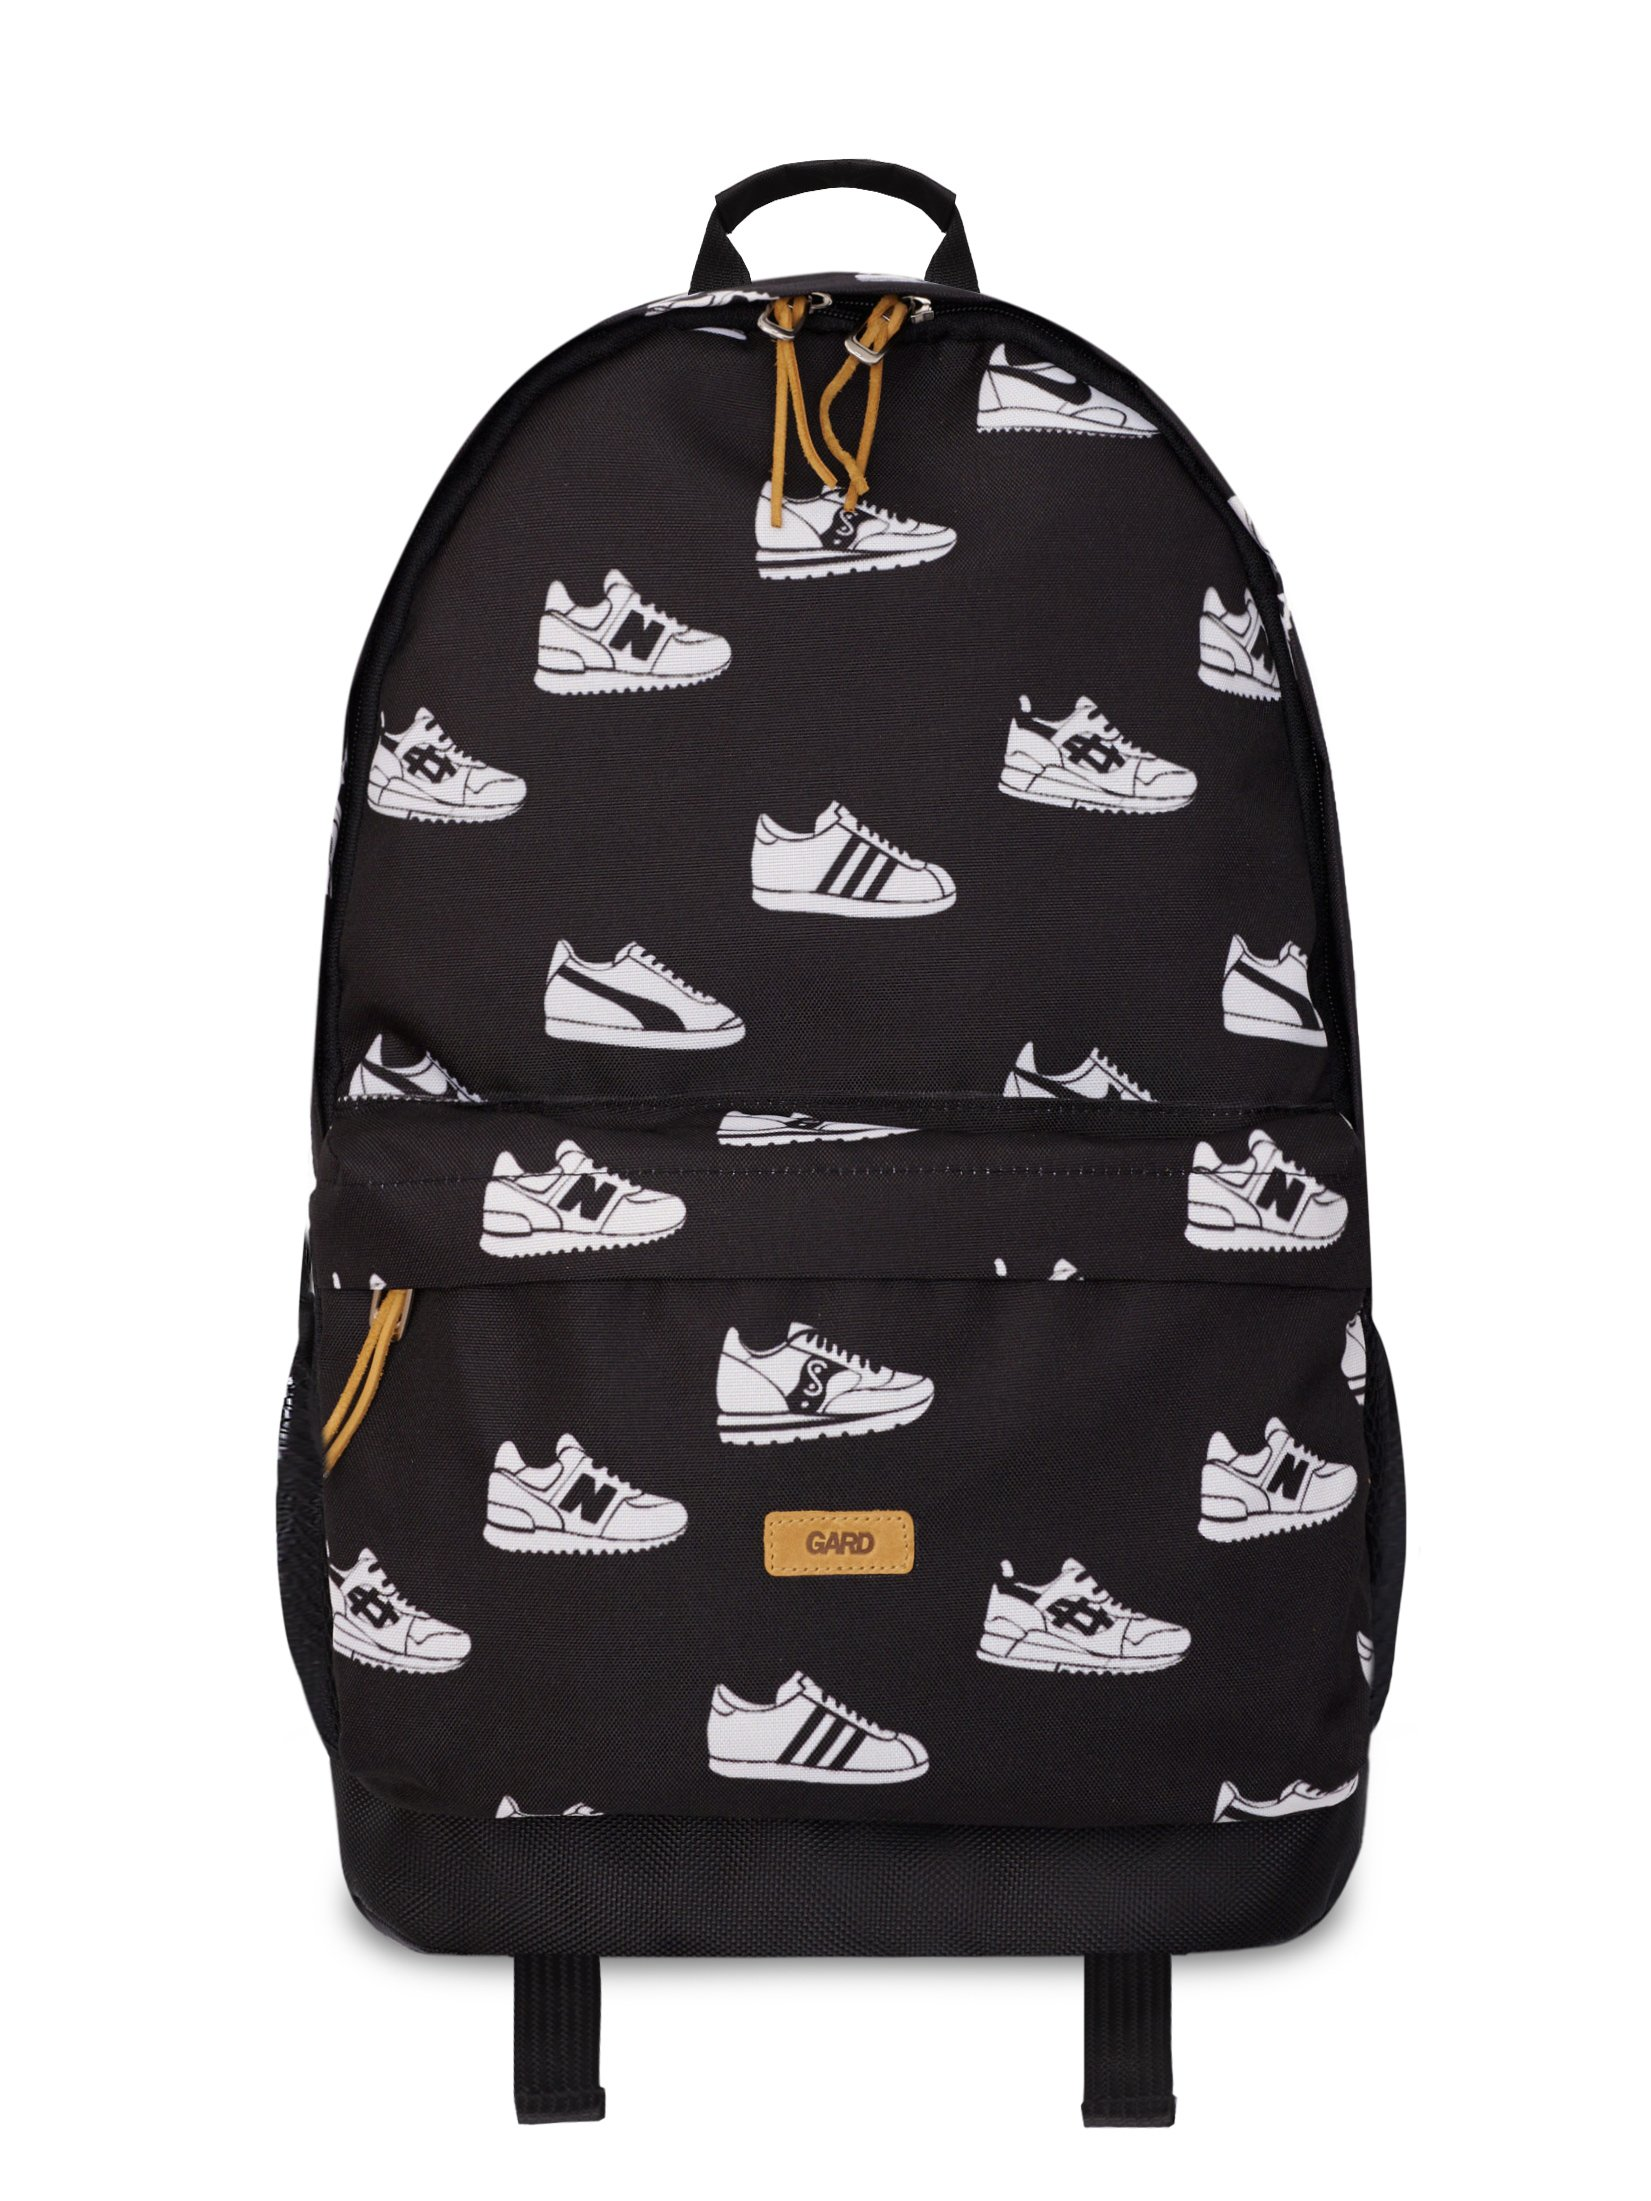 Рюкзак BACKPACK-2 sneaker 1/18